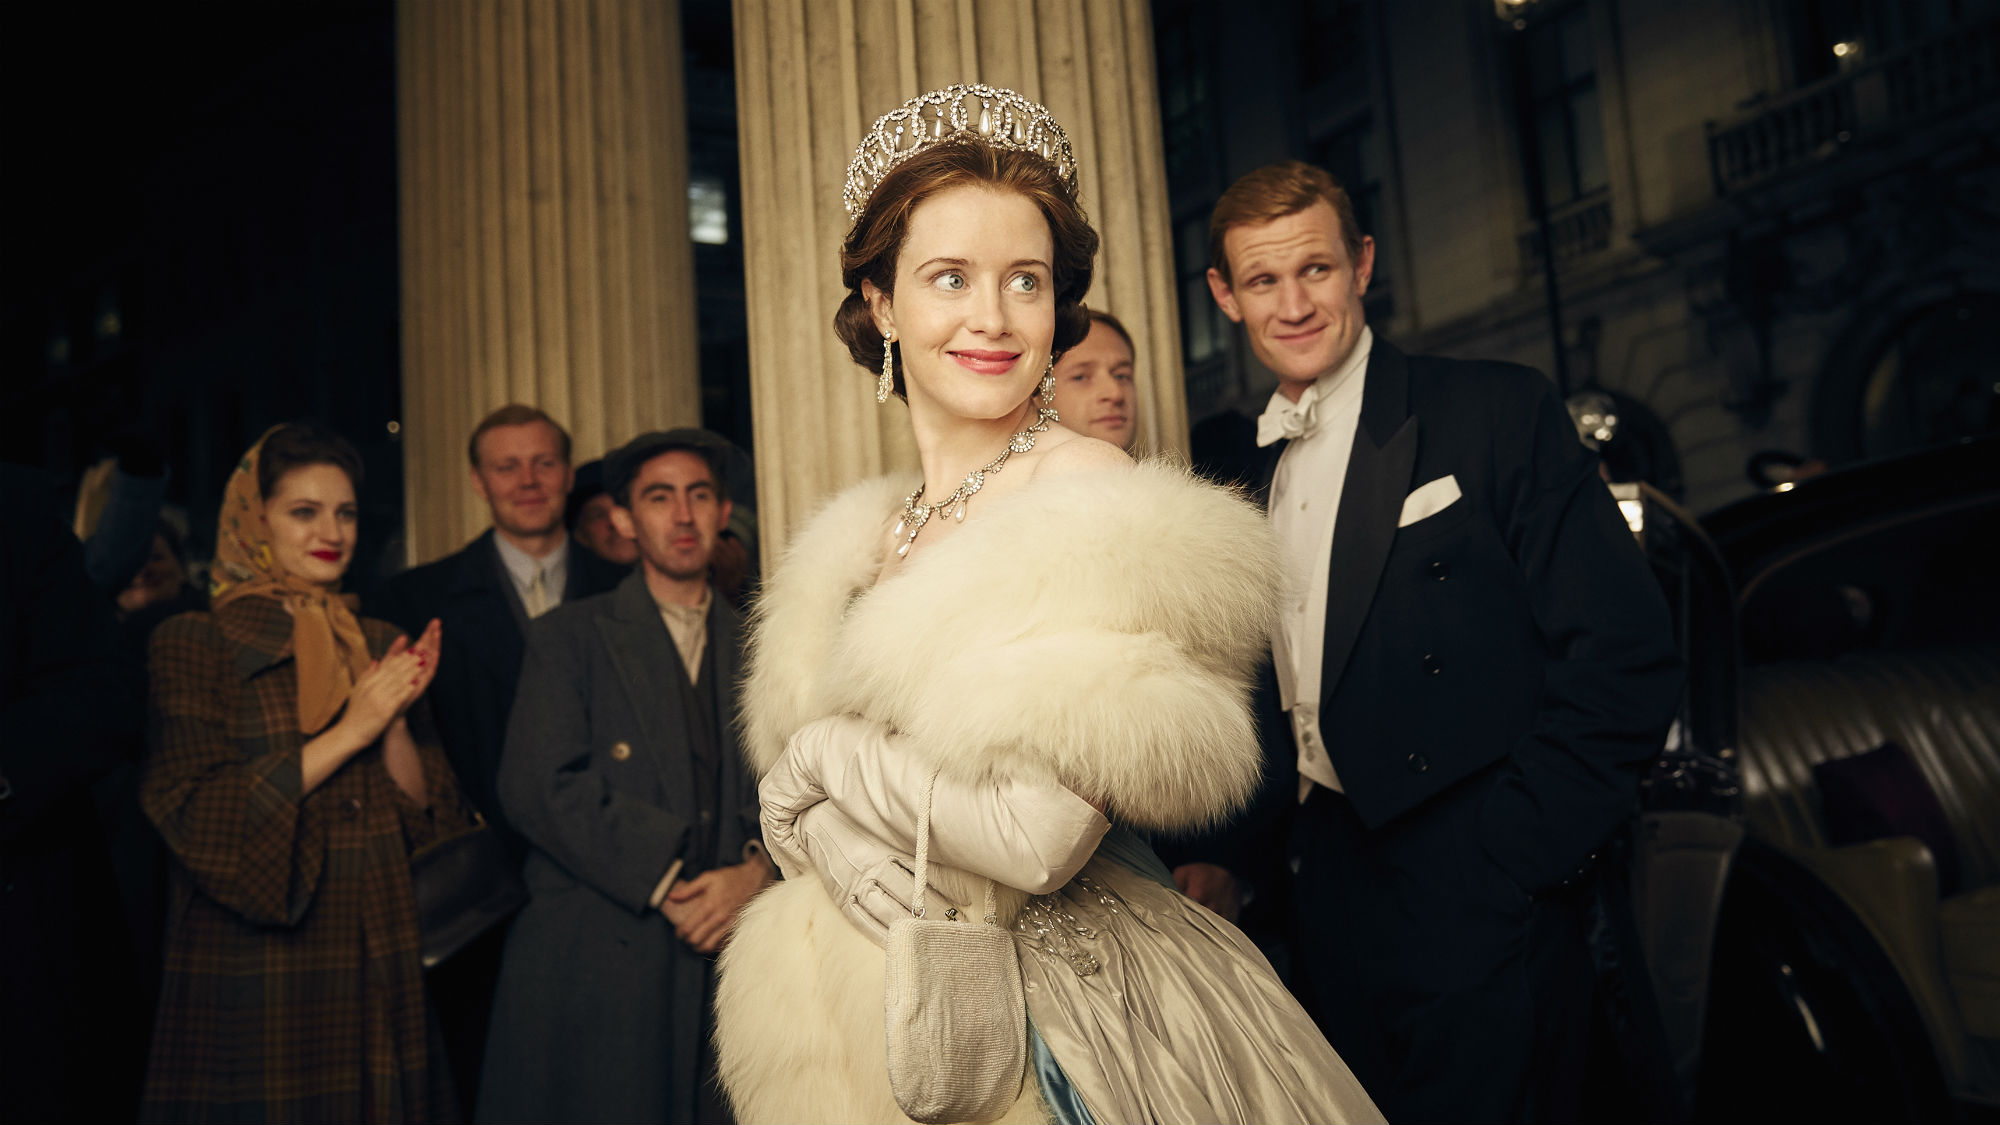 The Crown has cast the remaining royal family for its third season The-Crown-Netflix-